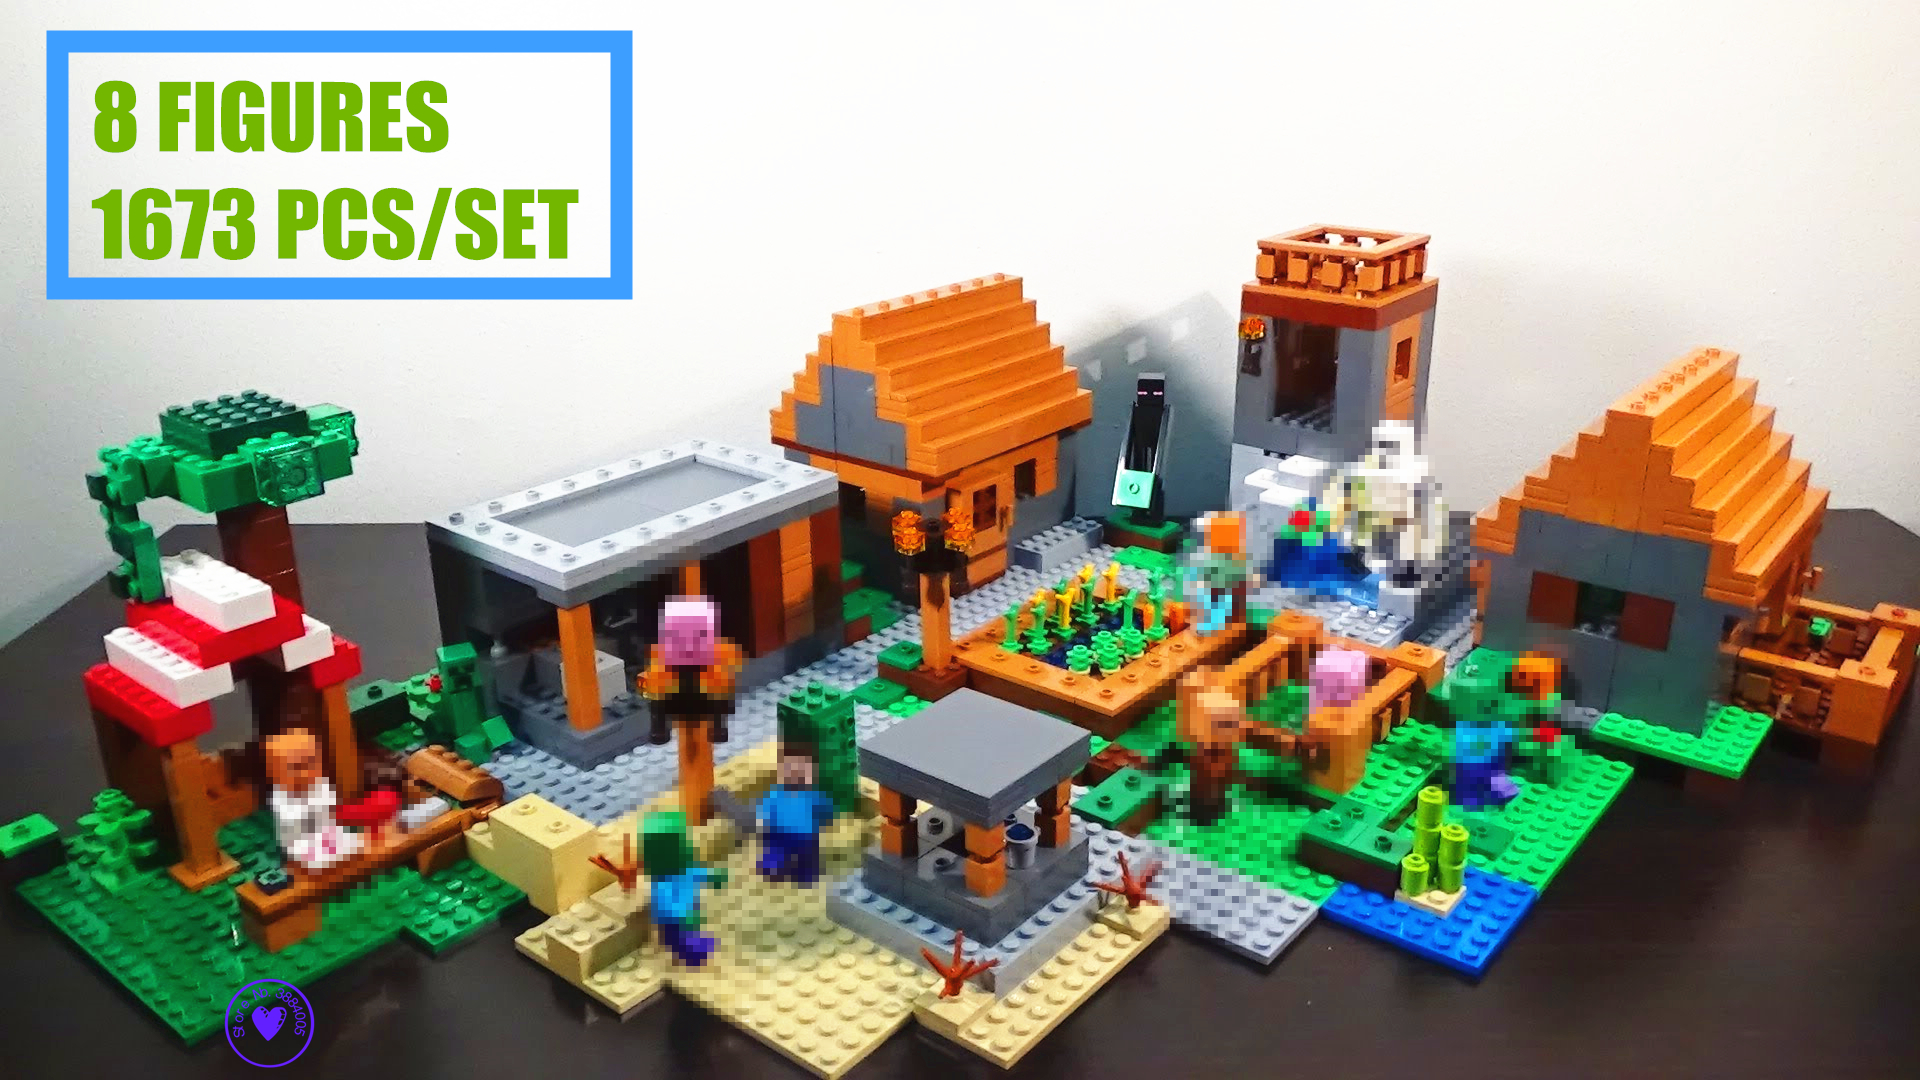 New My worlds Village fit legoings minecrafted figures city Model building blocks bricks diy toys children kid gift birthdays